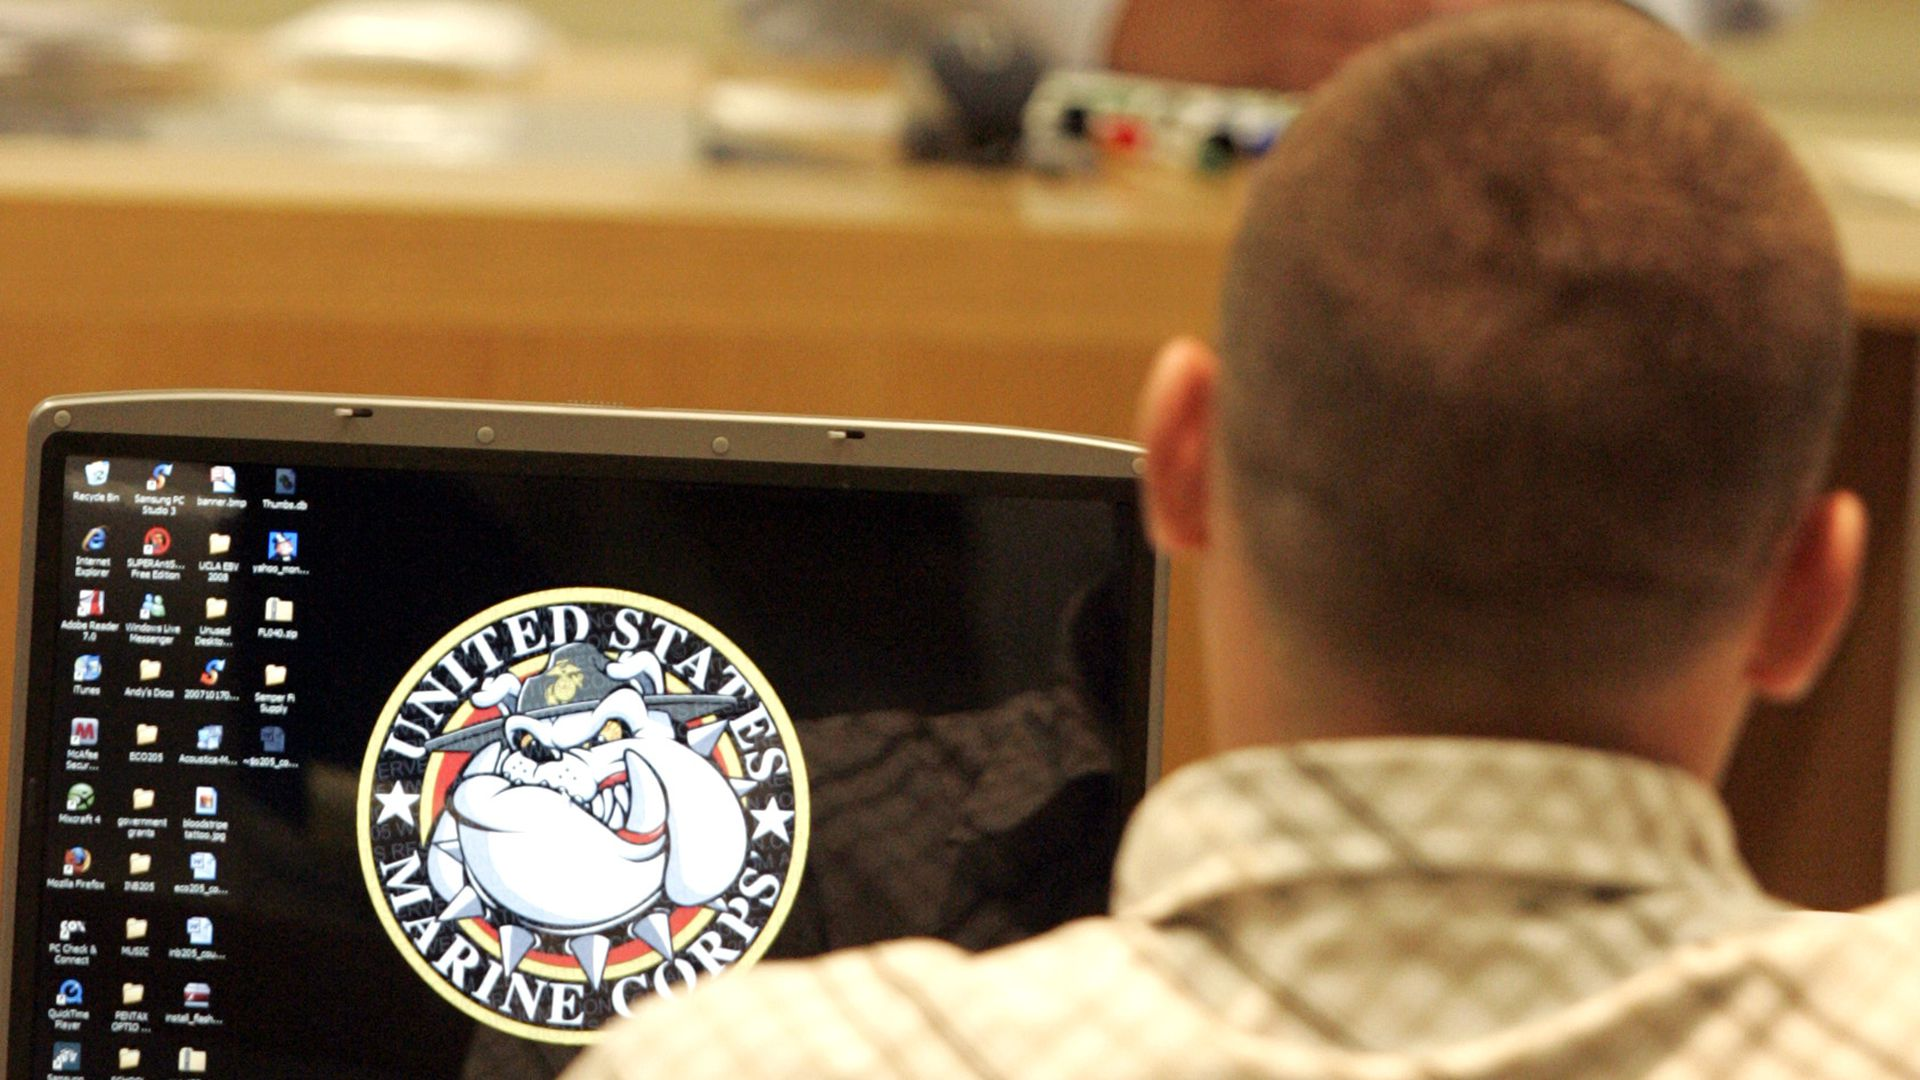 A man sits at a laptop displaying the US Marine Corps logo.